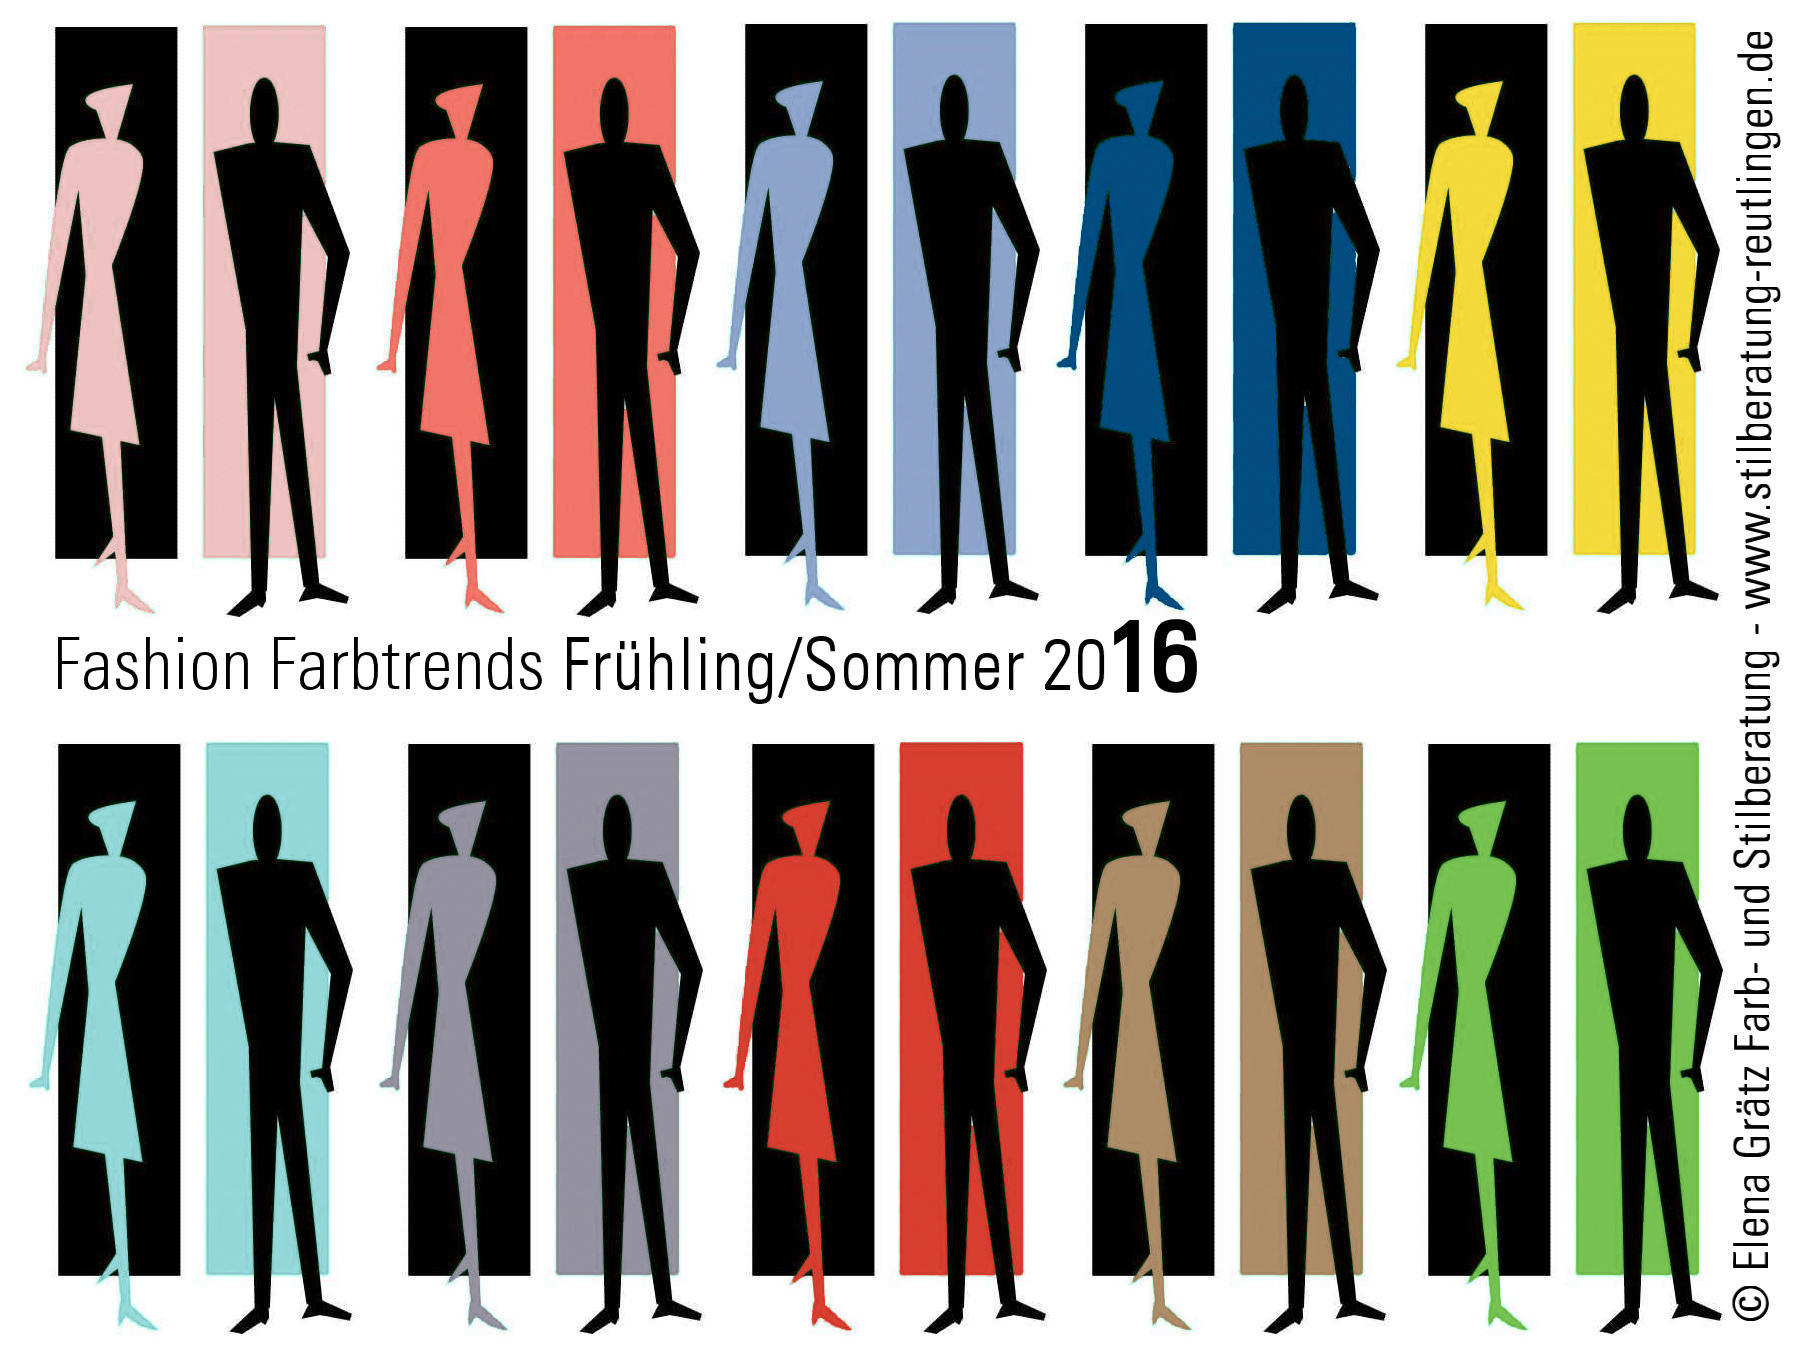 mode_fashion_farb_trends_frühling_2016_pantone